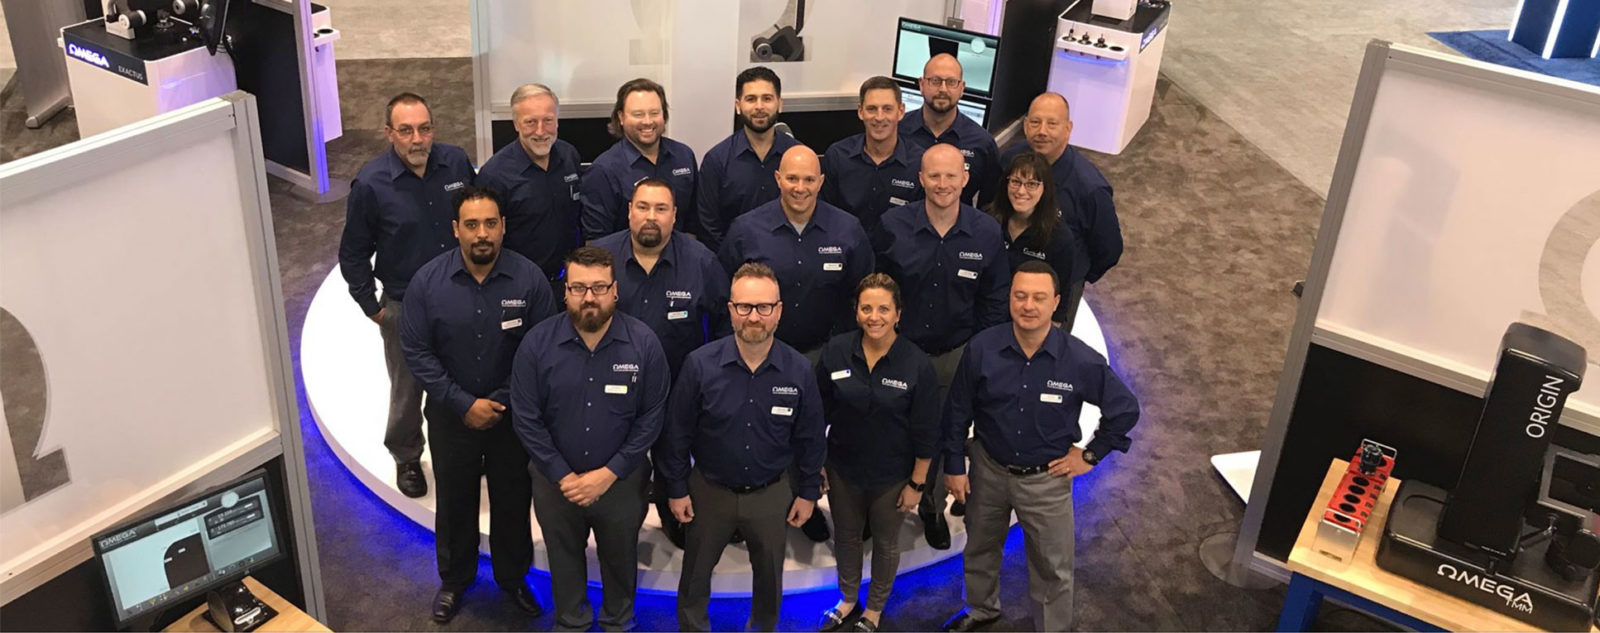 Omega TMM Team at IMTS 2019